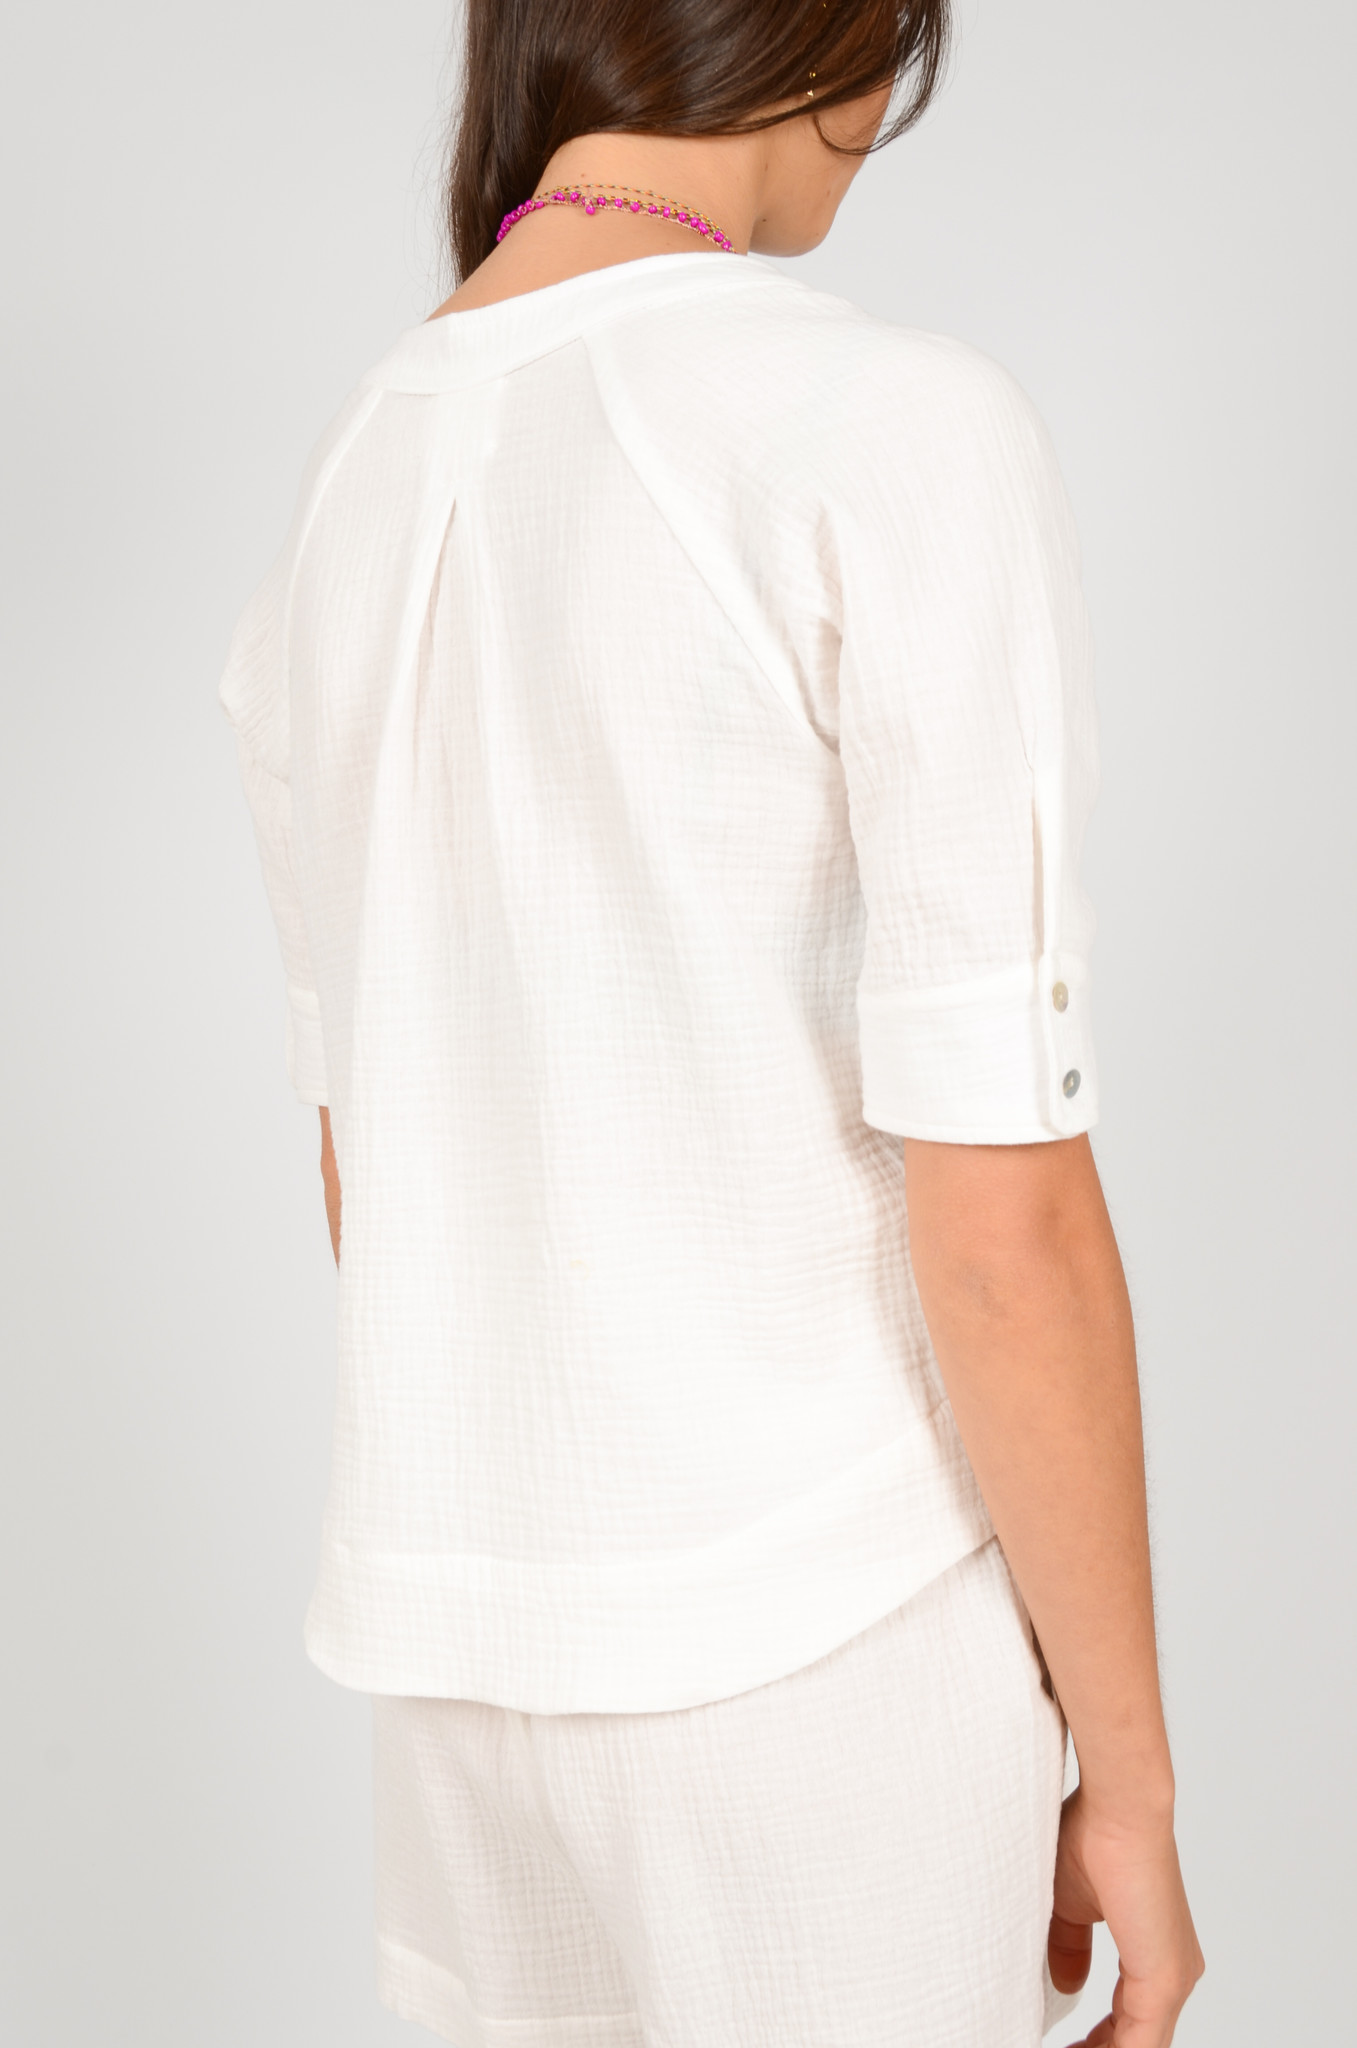 THEA SHIRT IN WHITE-3